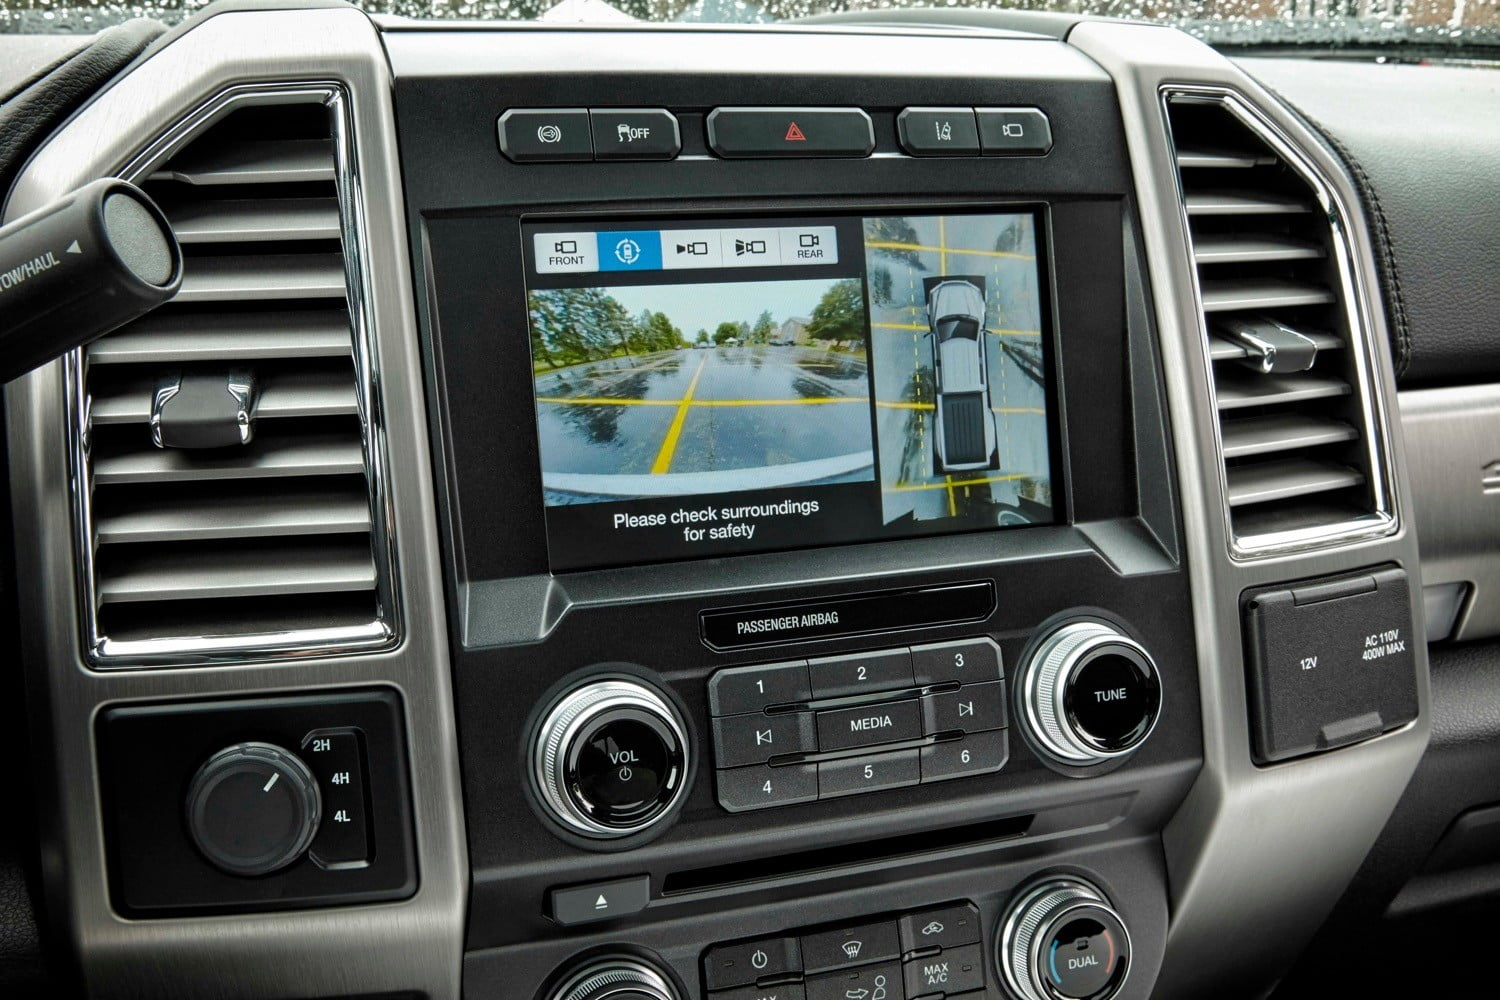 Backup And Parking Tech | Rearview Cameras, Park Assist